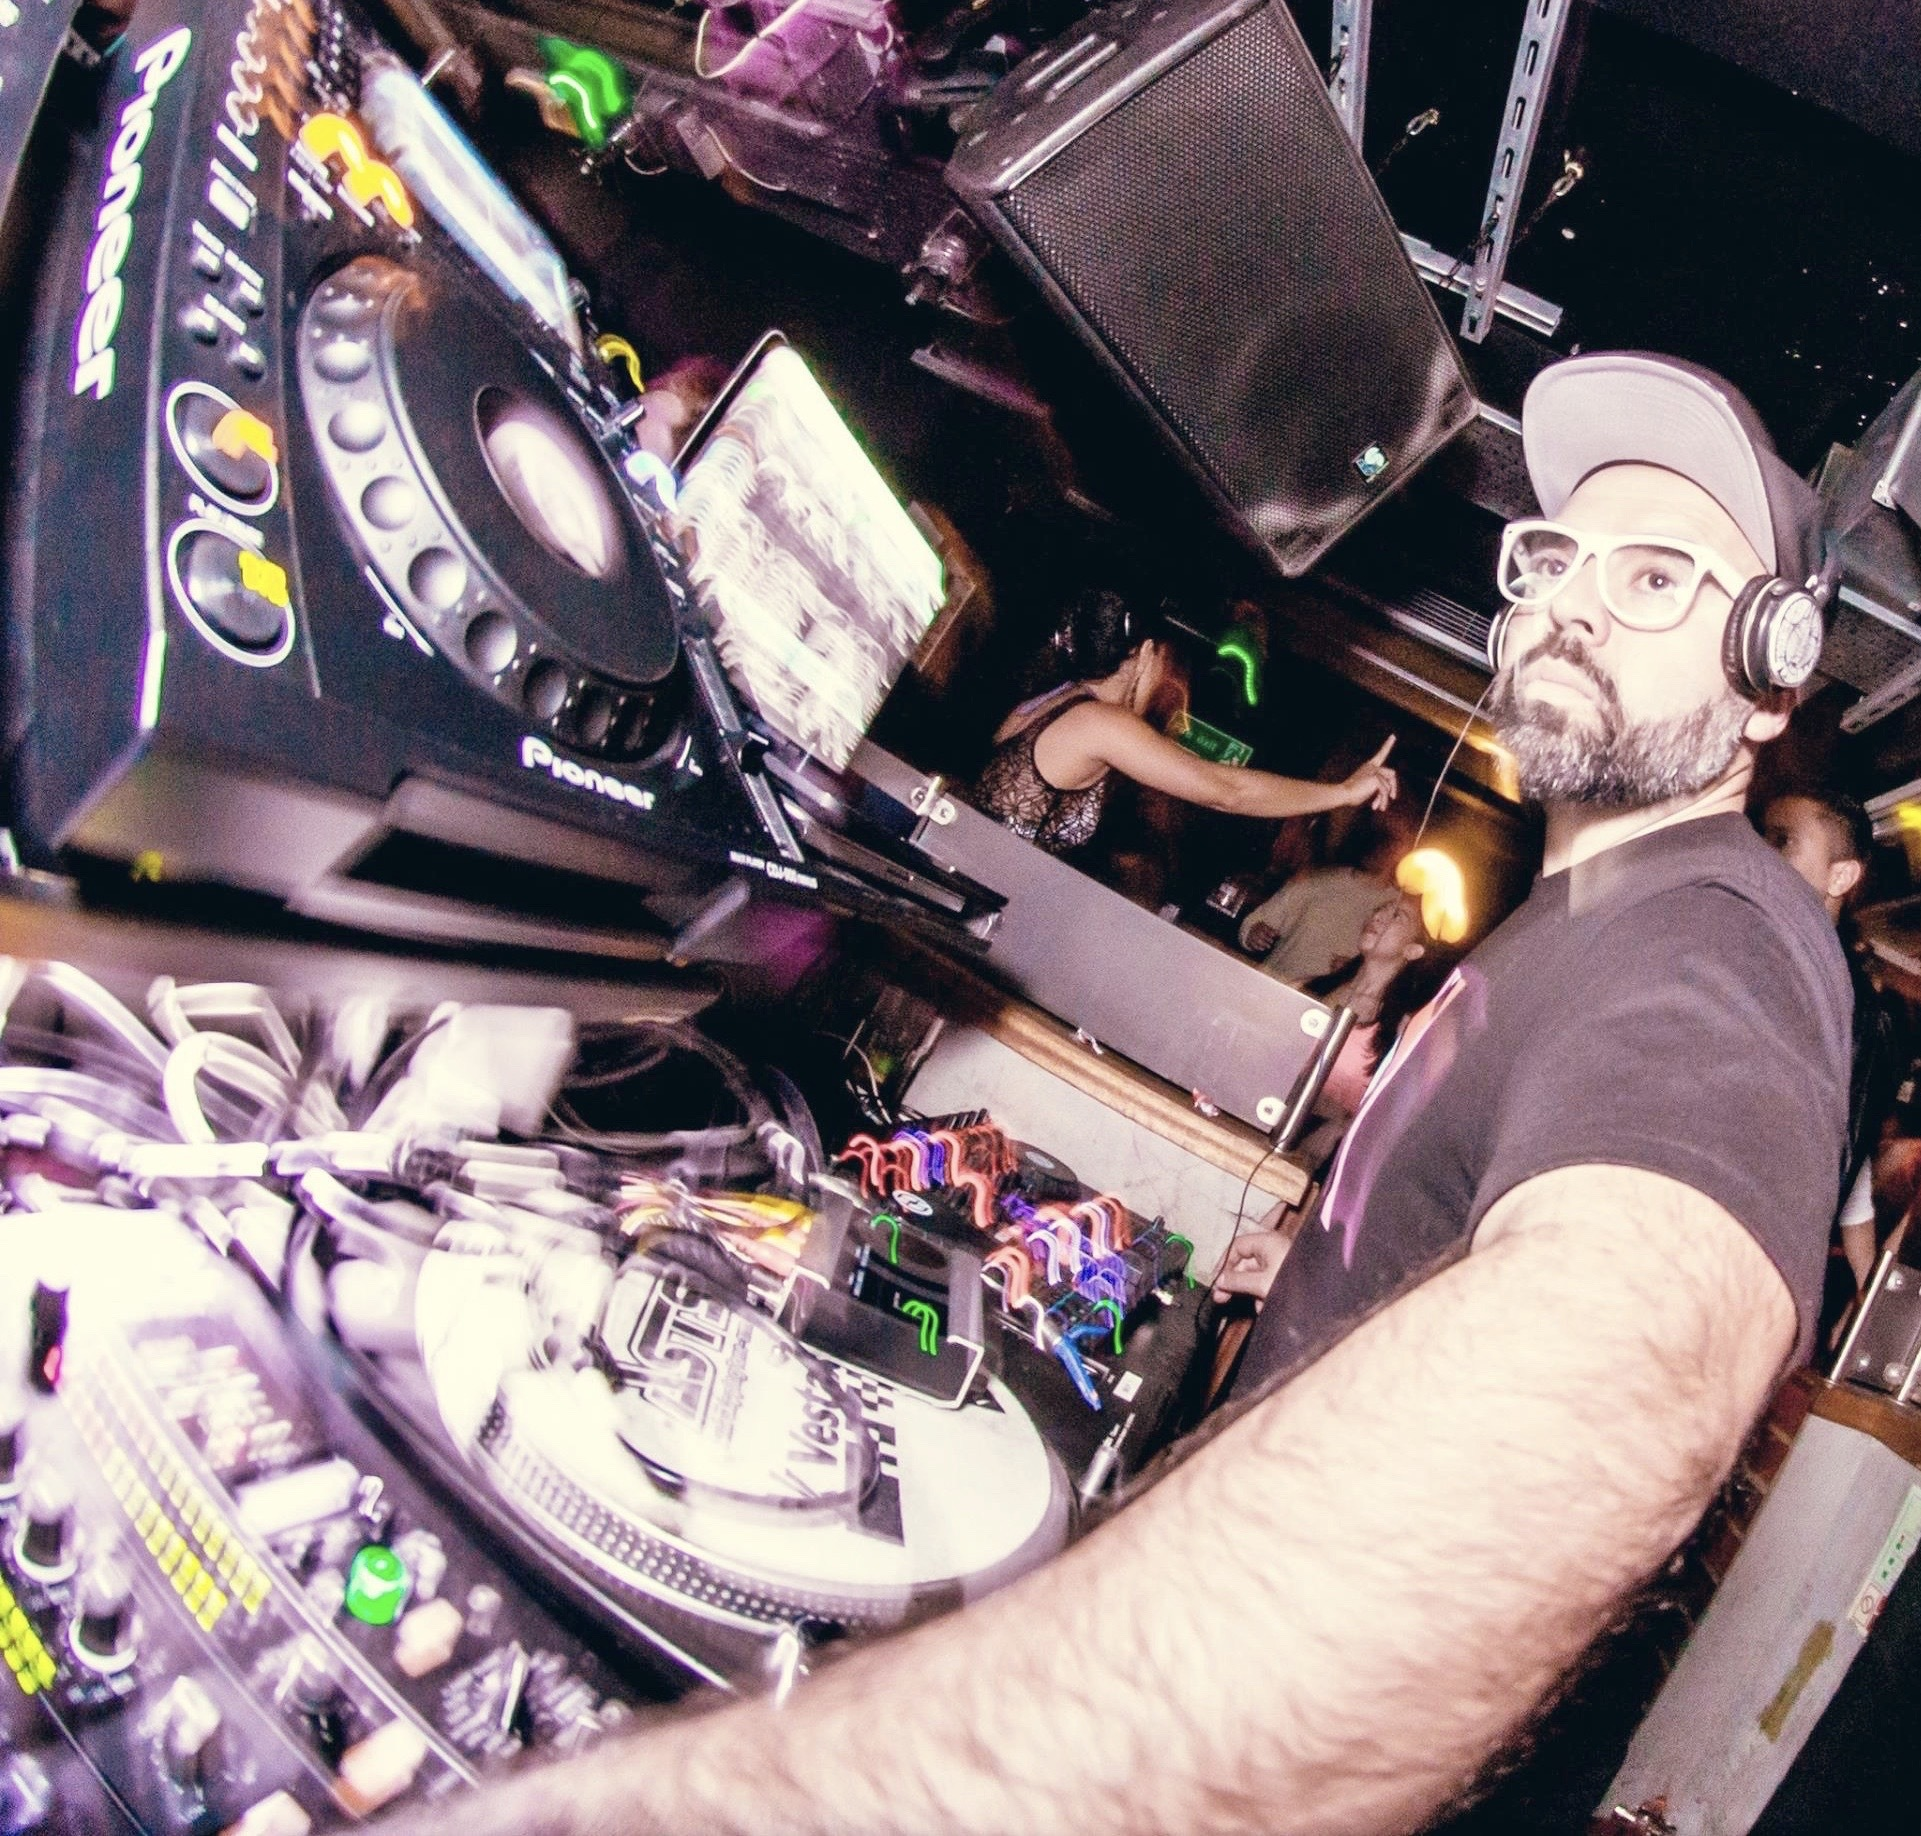 Former Ministry of Sound DJ joins Classic Ibiza event in Wiltshire